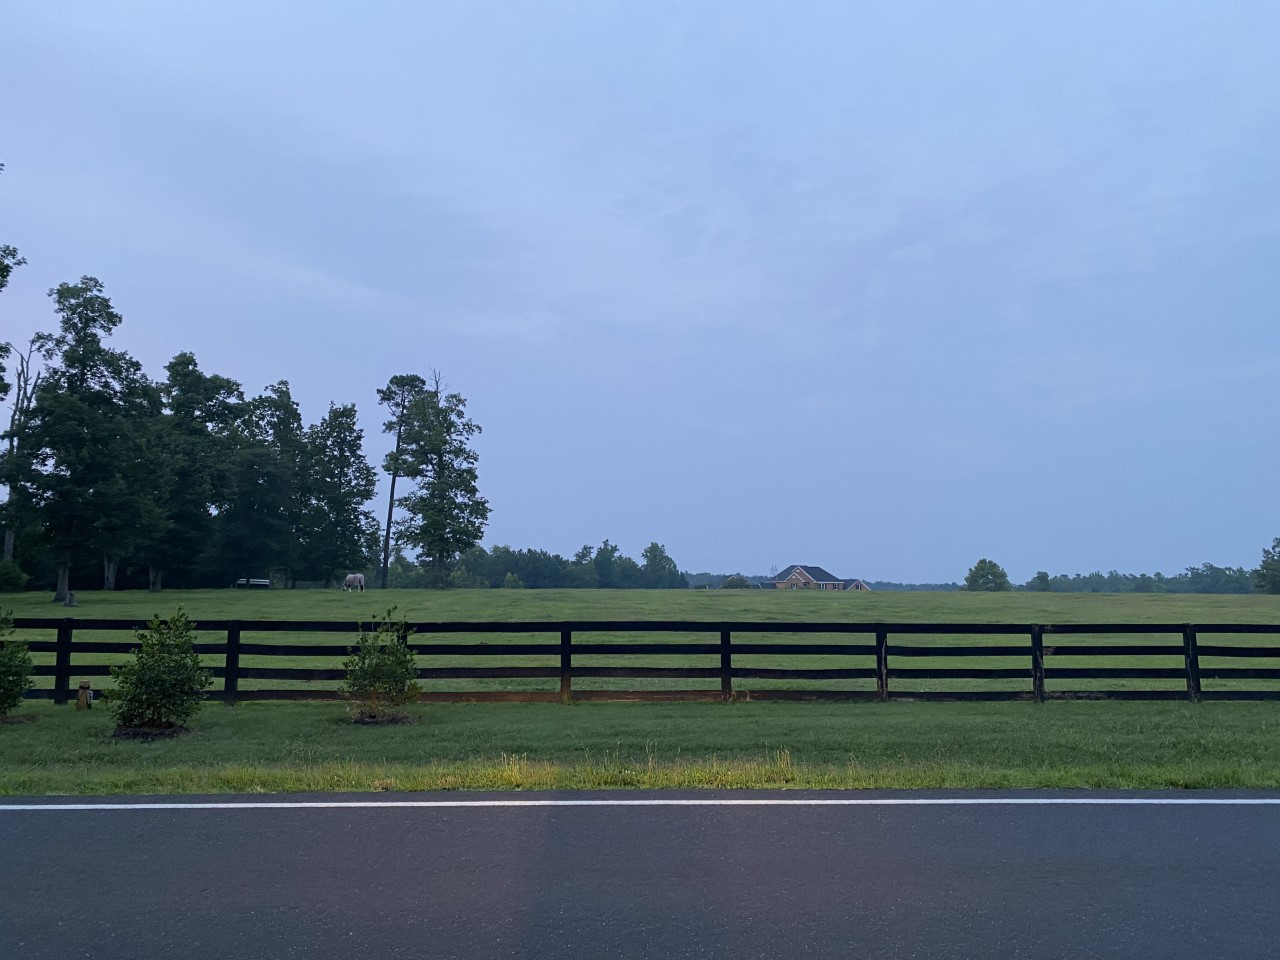 equestrian center, events venue, bed and breakfast hearing postponed